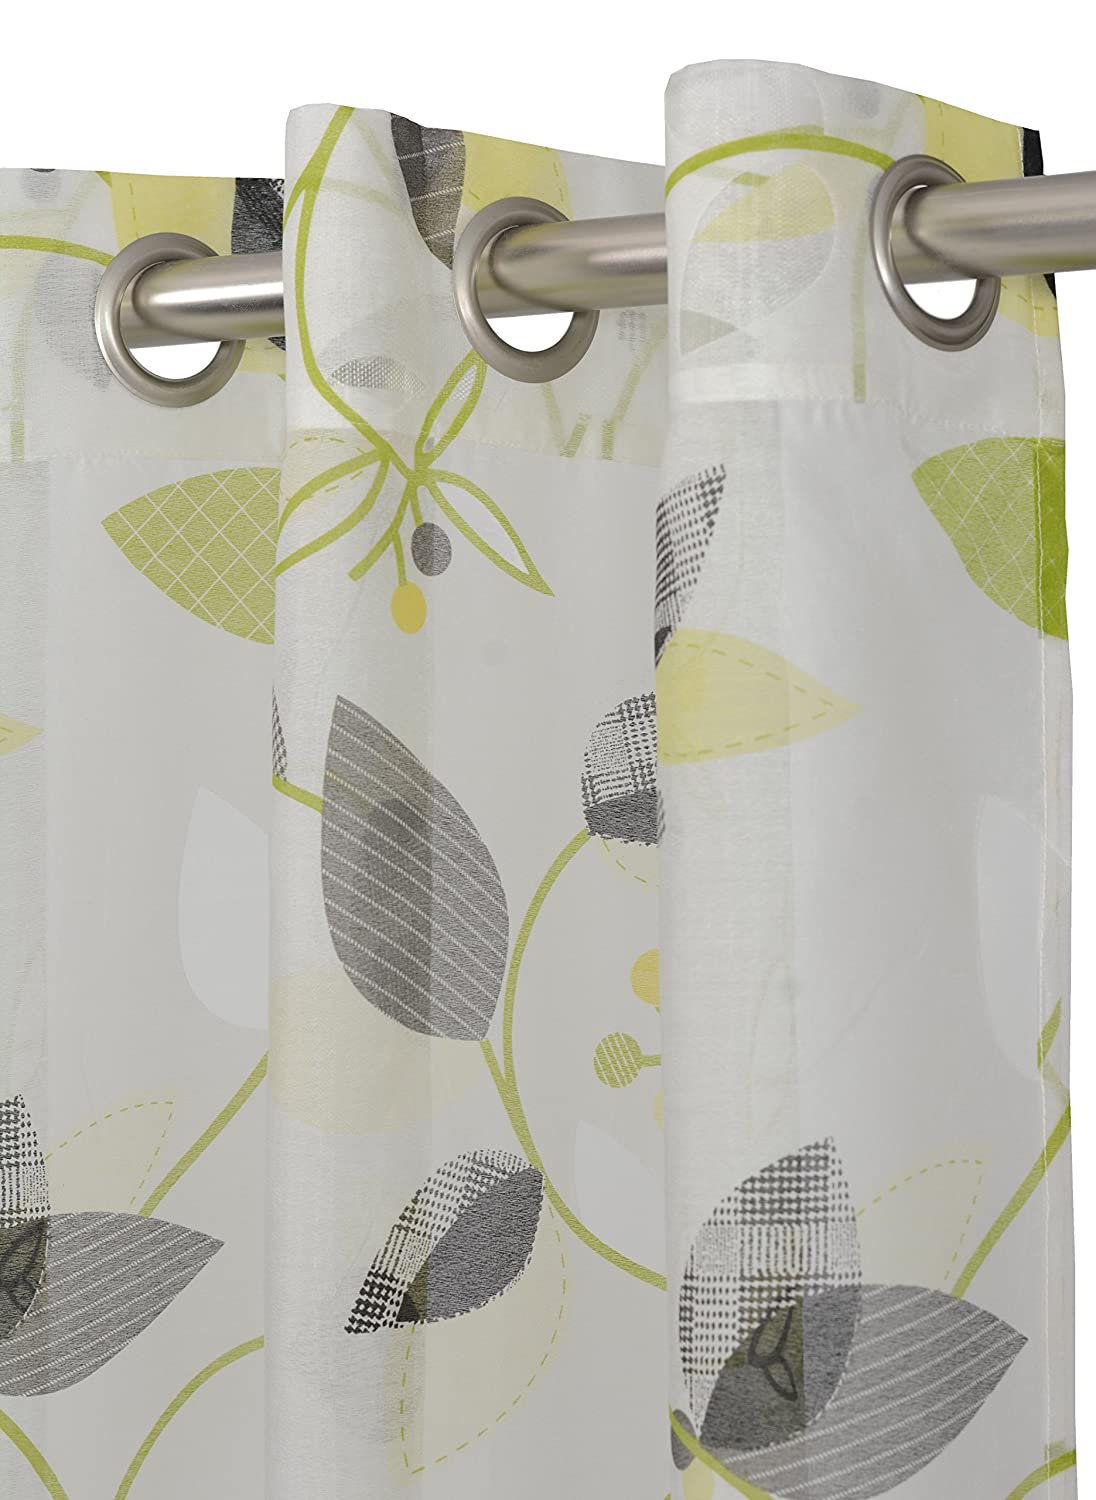 LJ Home Fashions Thyme Sheer Botanical Leaf Print Grommet Curtain Panels 52x95-in White//Green//Charcoal Grey Set of 2